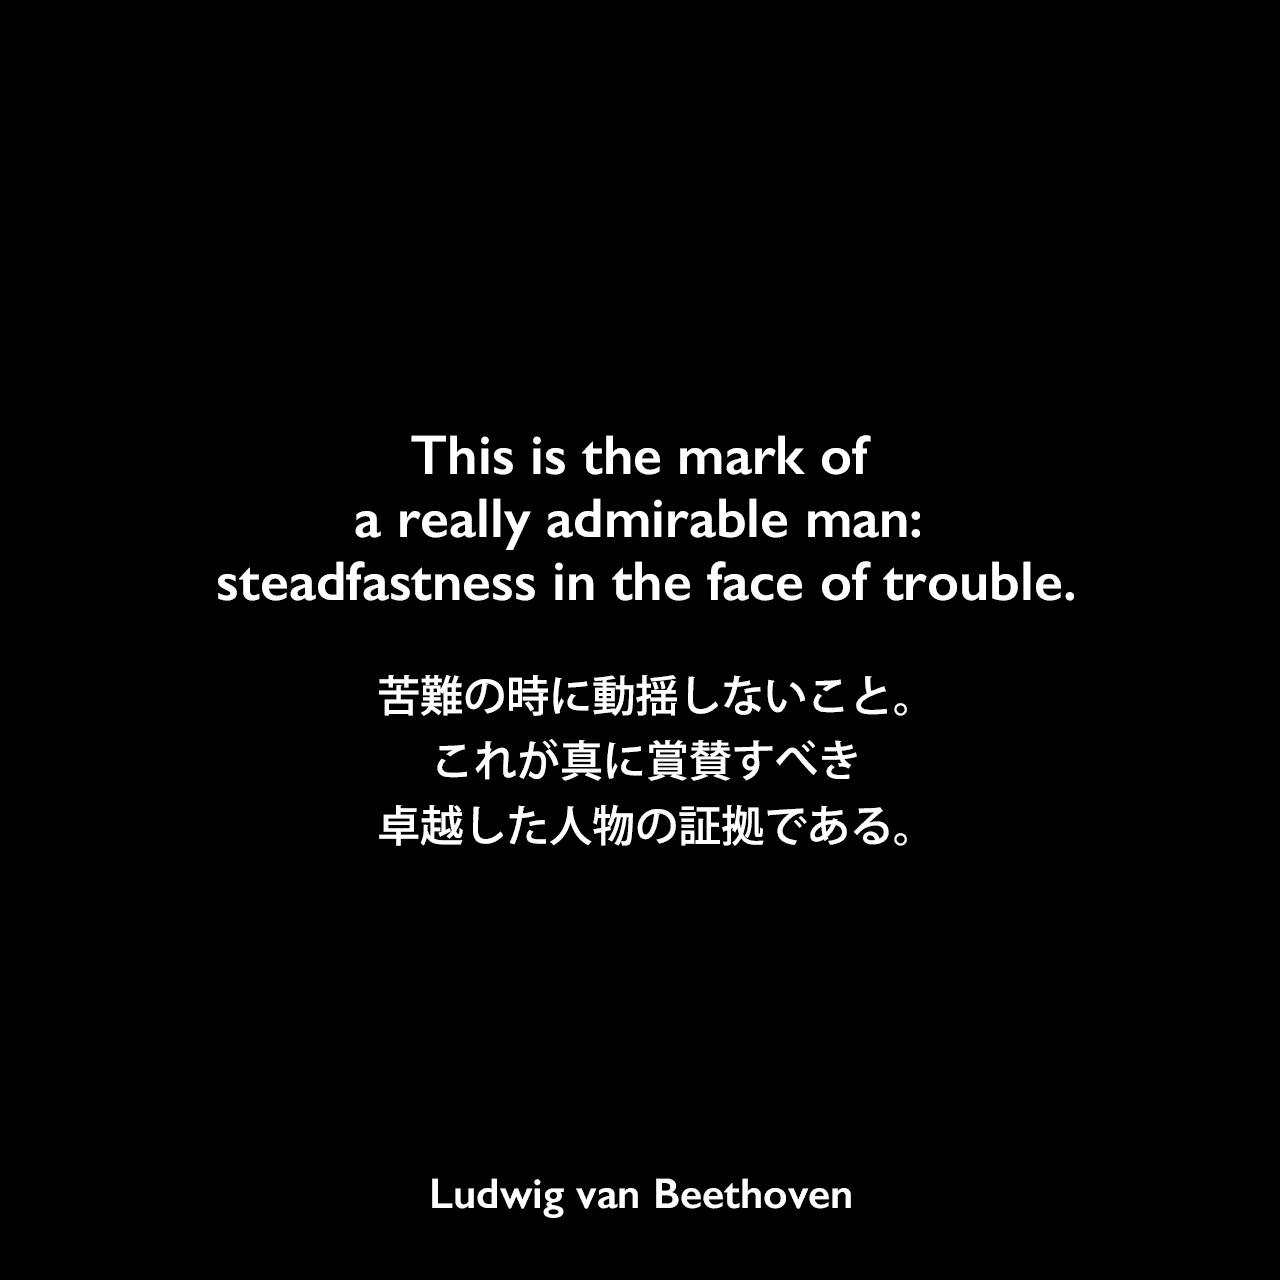 This is the mark of a really admirable man: steadfastness in the face of trouble.苦難の時に動揺しないこと。これが真に賞賛すべき卓越した人物の証拠である。